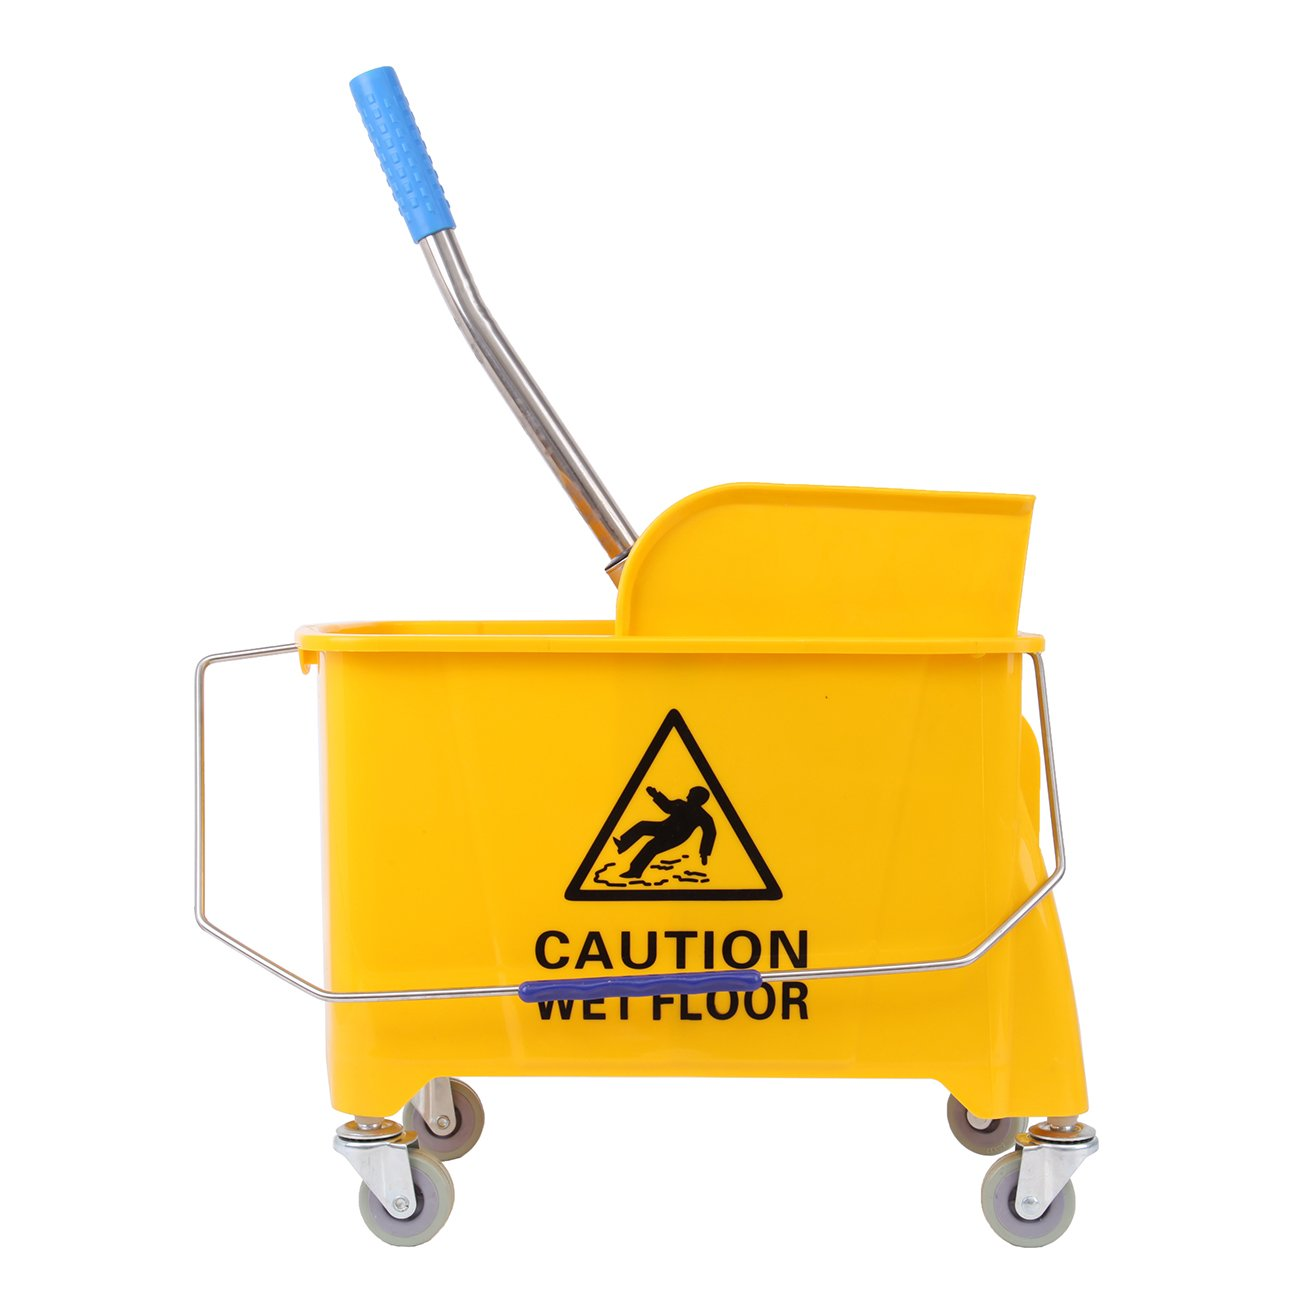 Ridgeyard Commercial Side Press Mop Bucket with Wringer 21 Quart (5.28 Gallon) Yellow Combo Bucket w/ 4 Wheels Mother's Day Gift